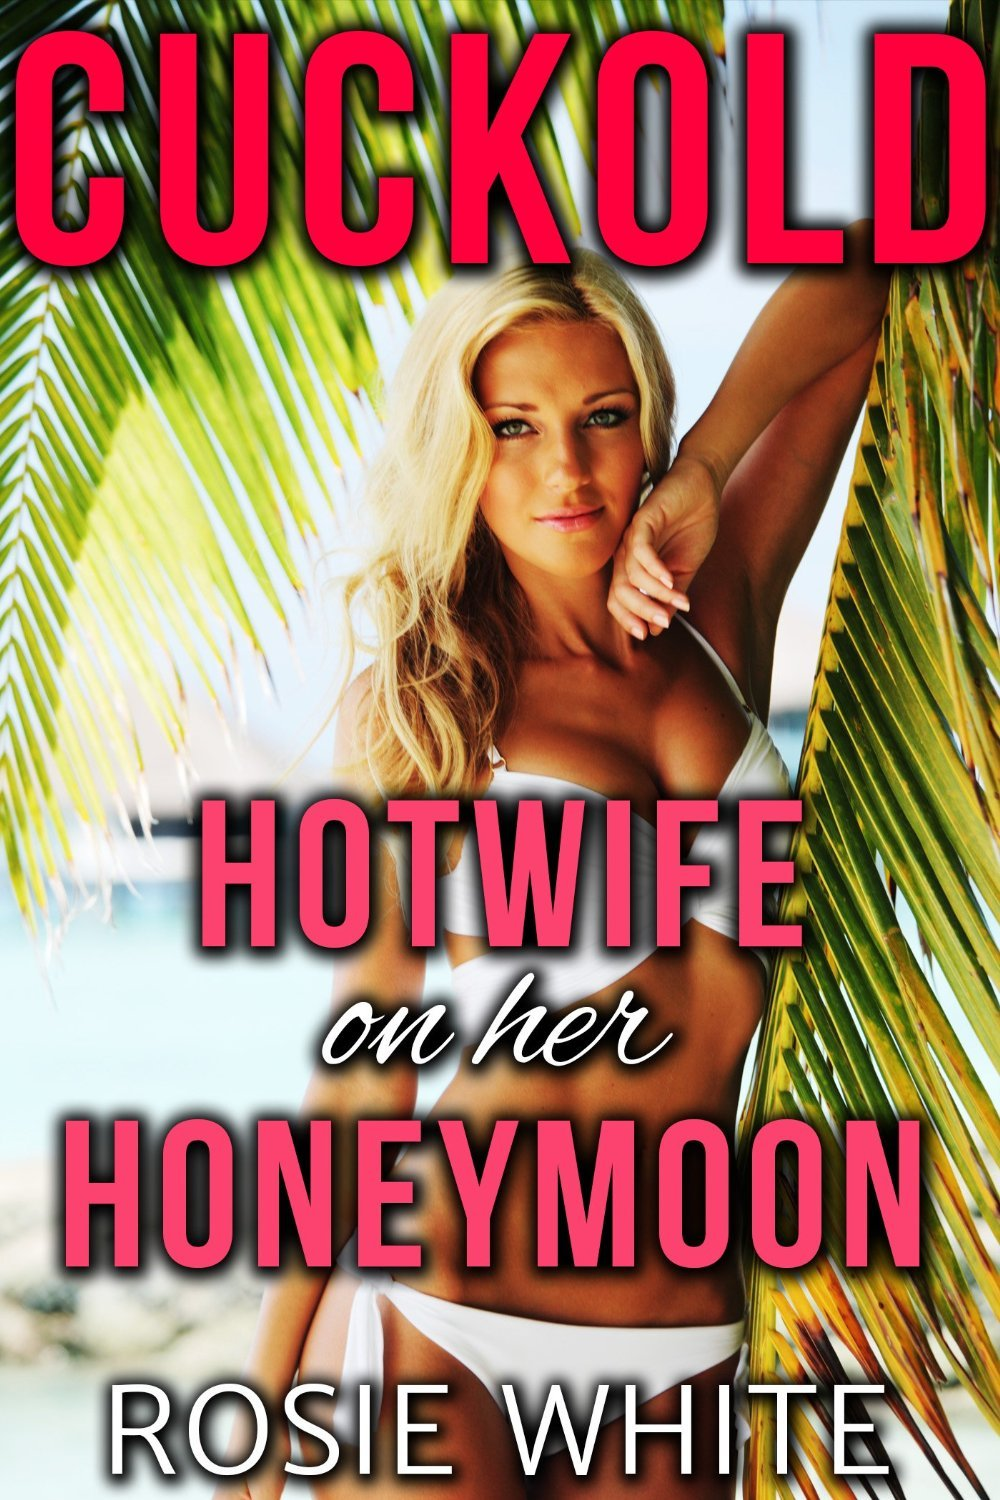 Cuckold: Hotwife on her Honeymoon: A cuckold hotwife interracial humiliation story Rosie White